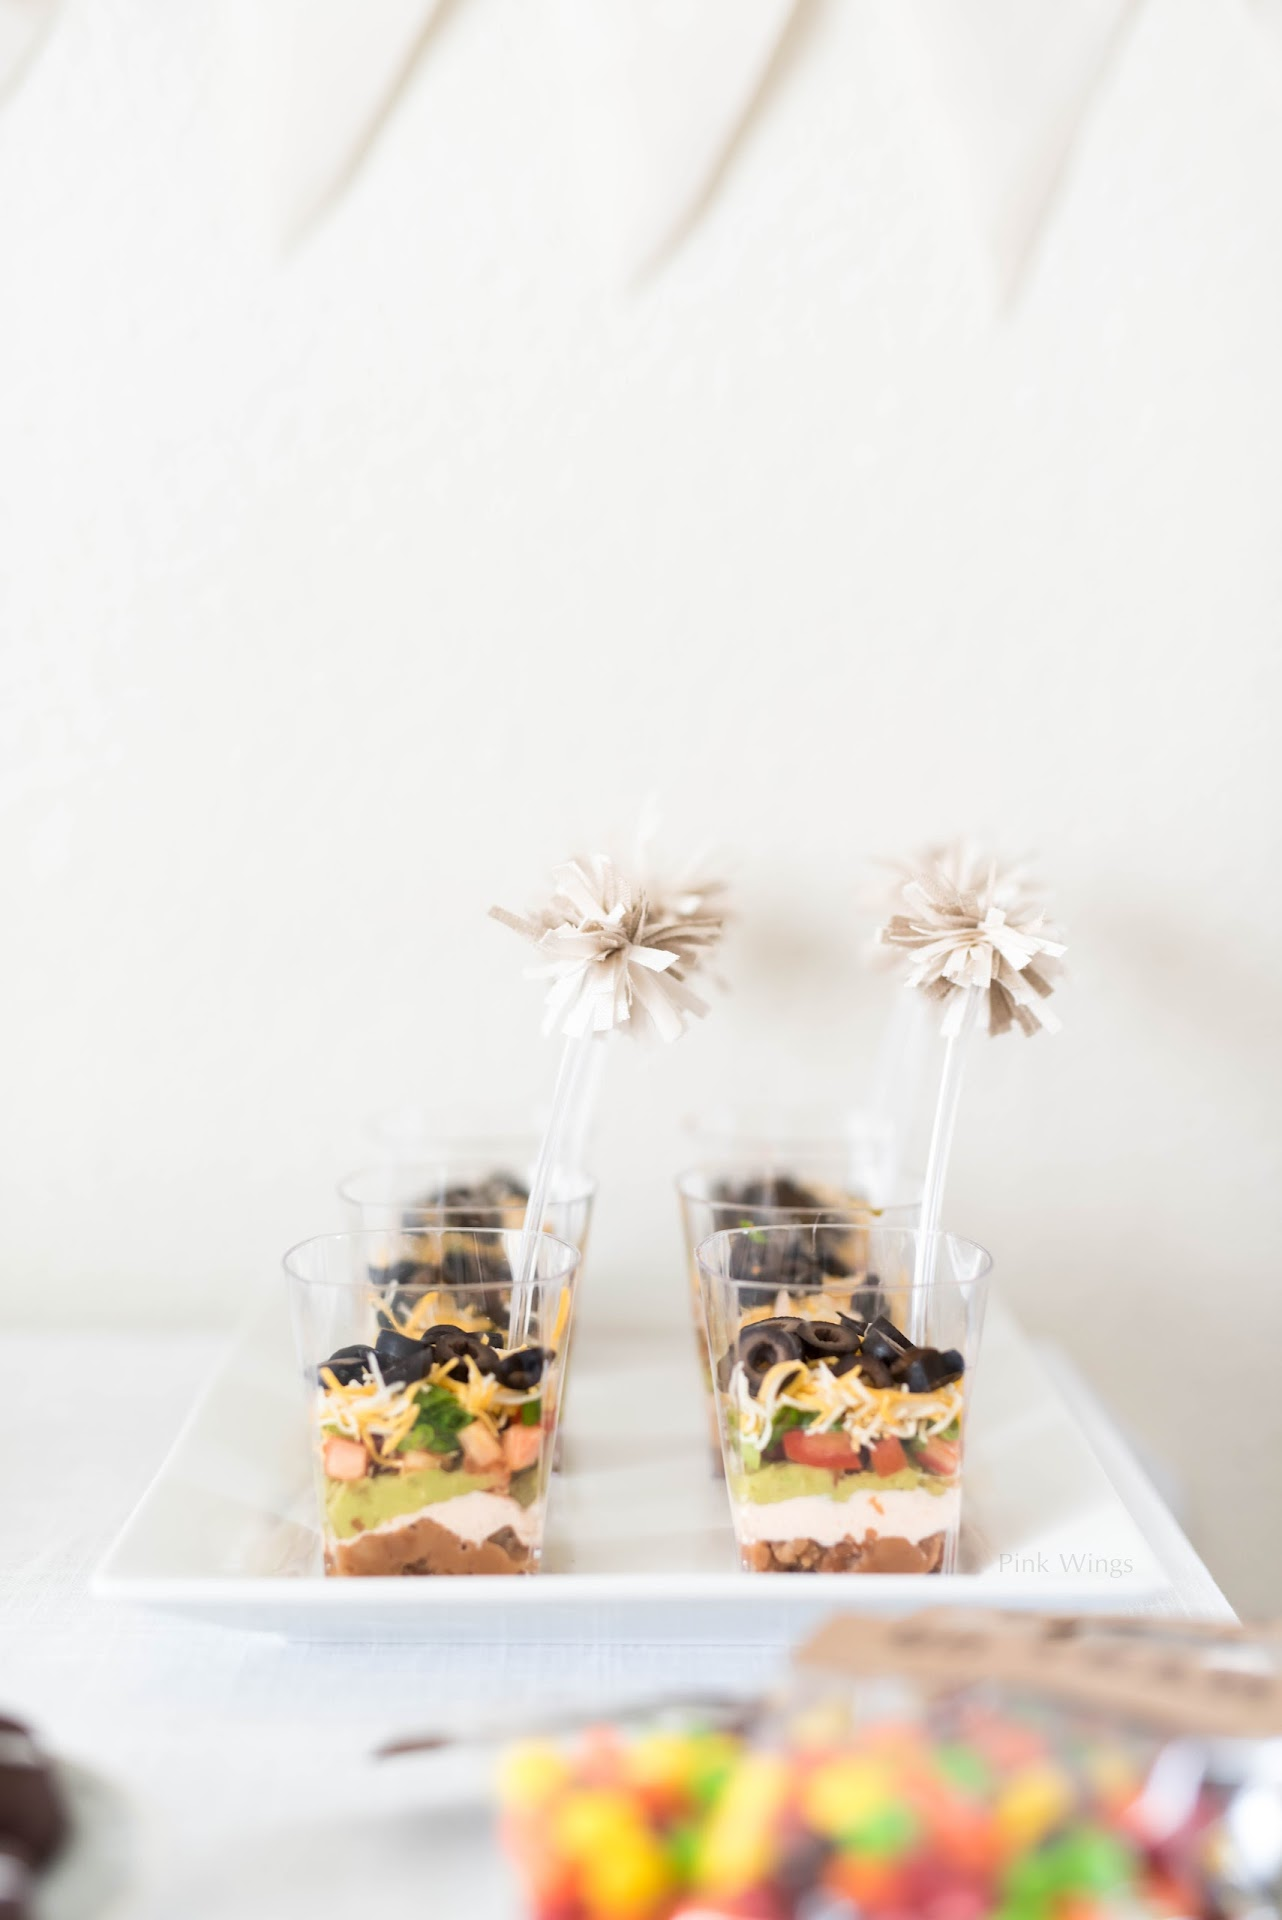 football party food ideas, tailgating, seven layer dip, diy cheerleader pom poms, football party decor, decorations,